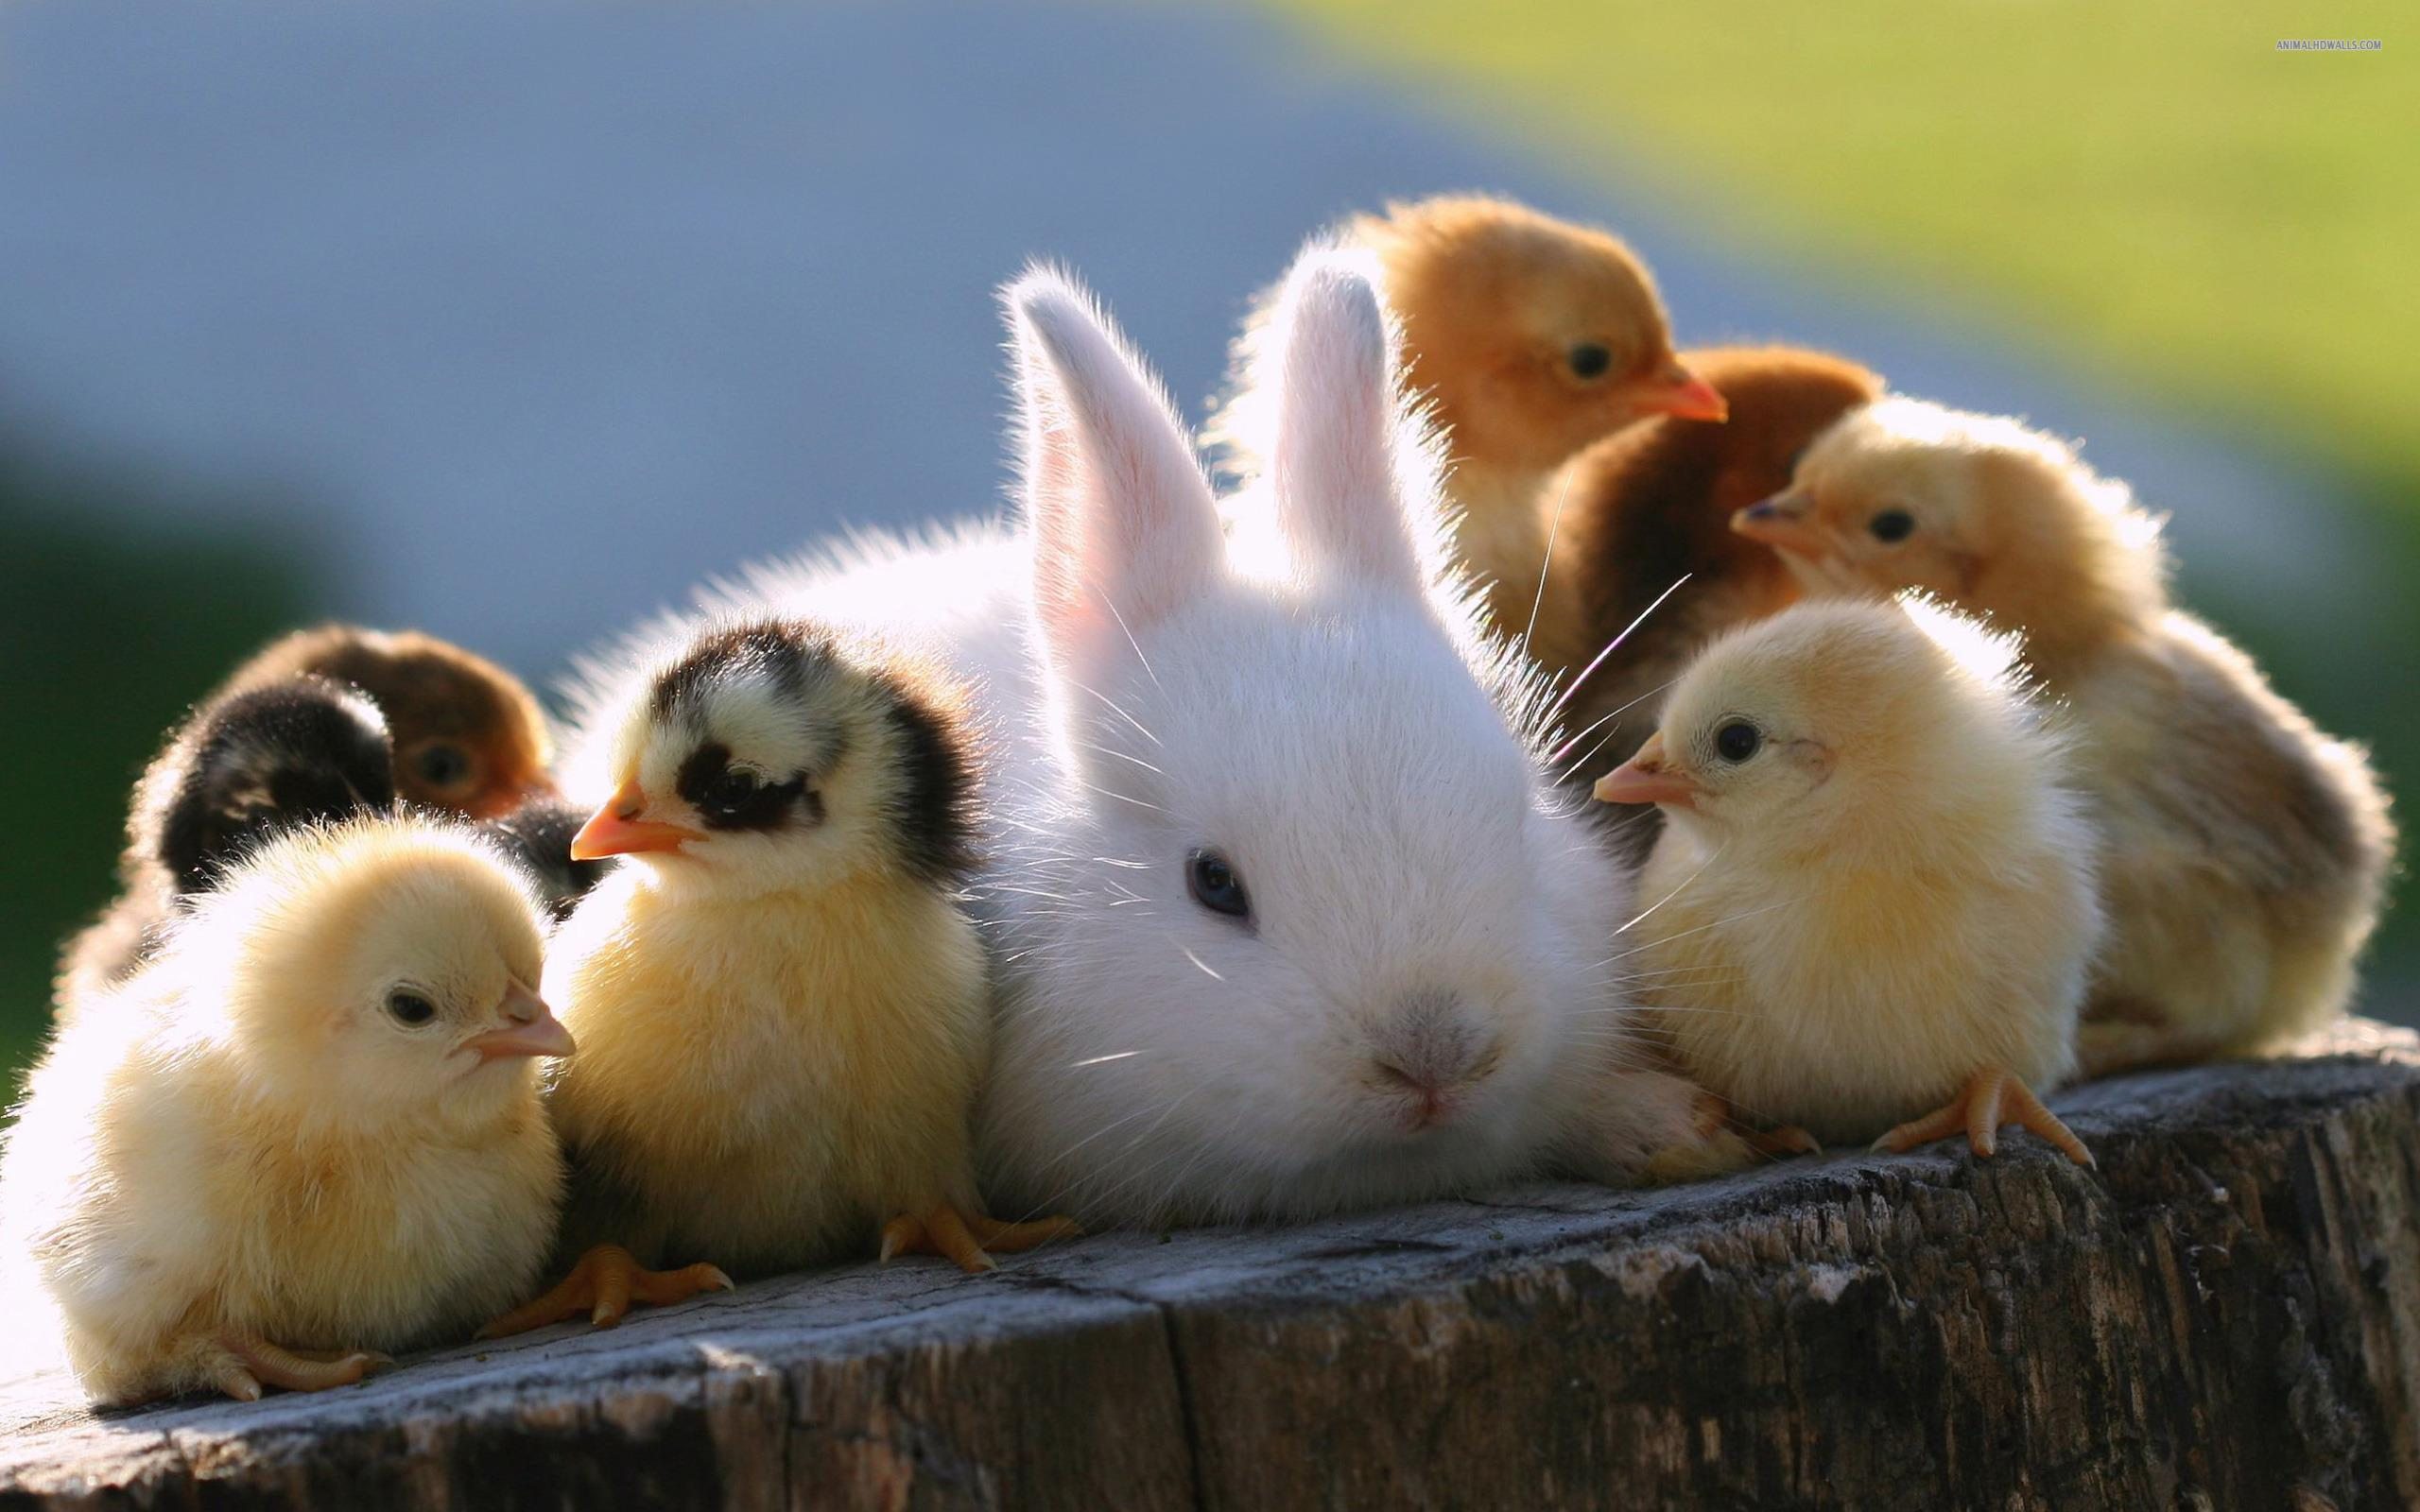 baby chicks and rabbit are so cute animals